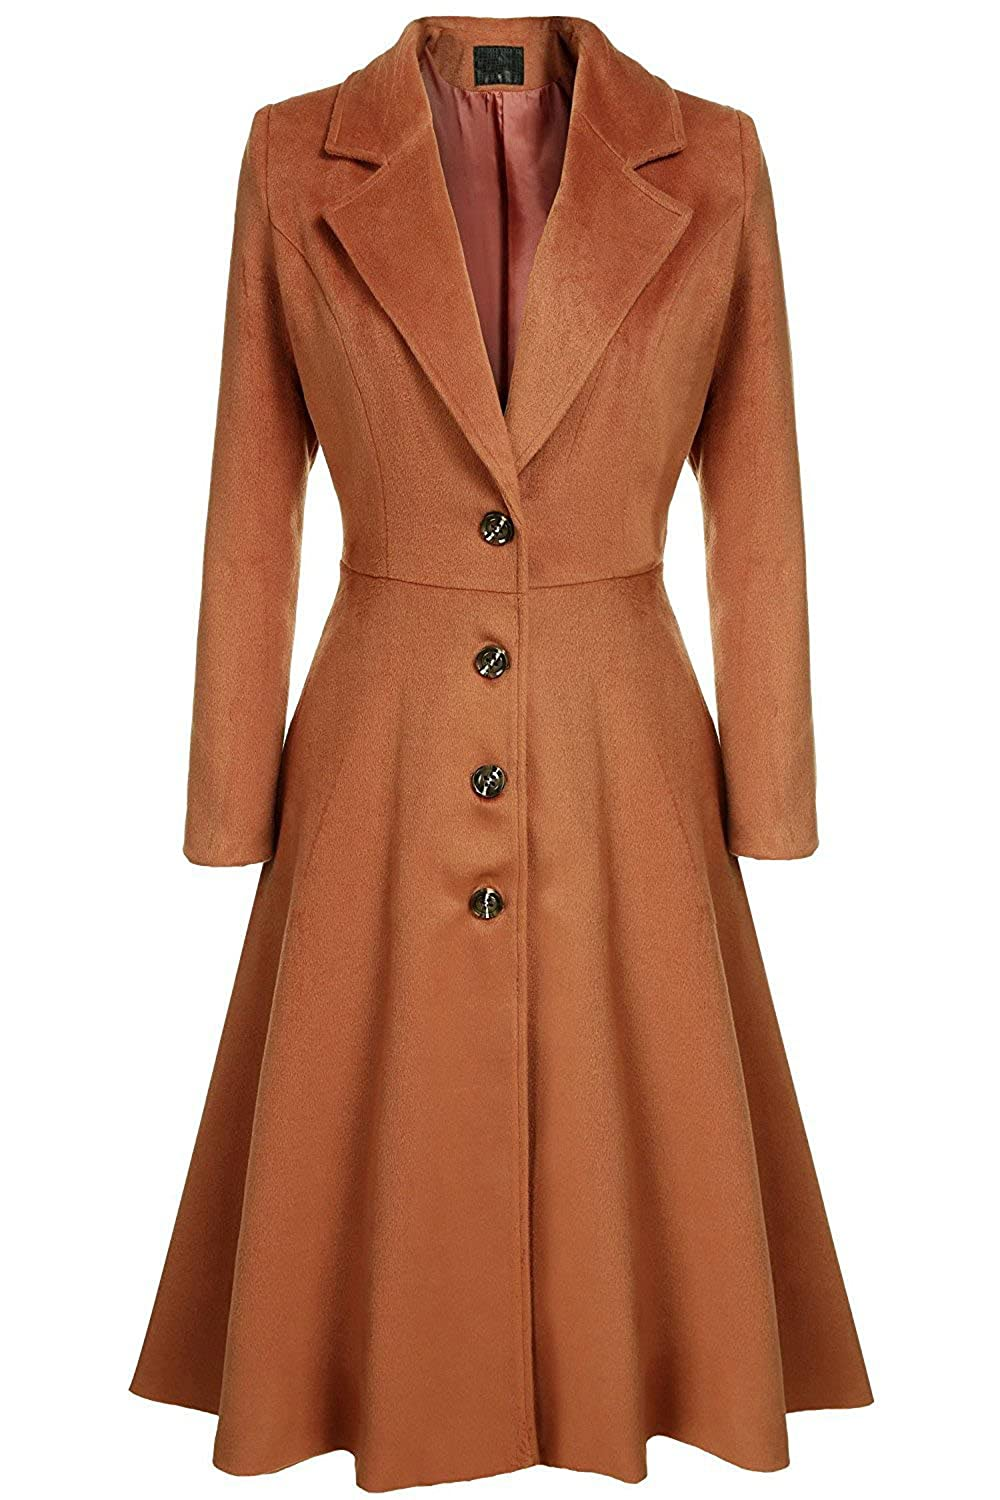 1940s Coats & Jackets Fashion History